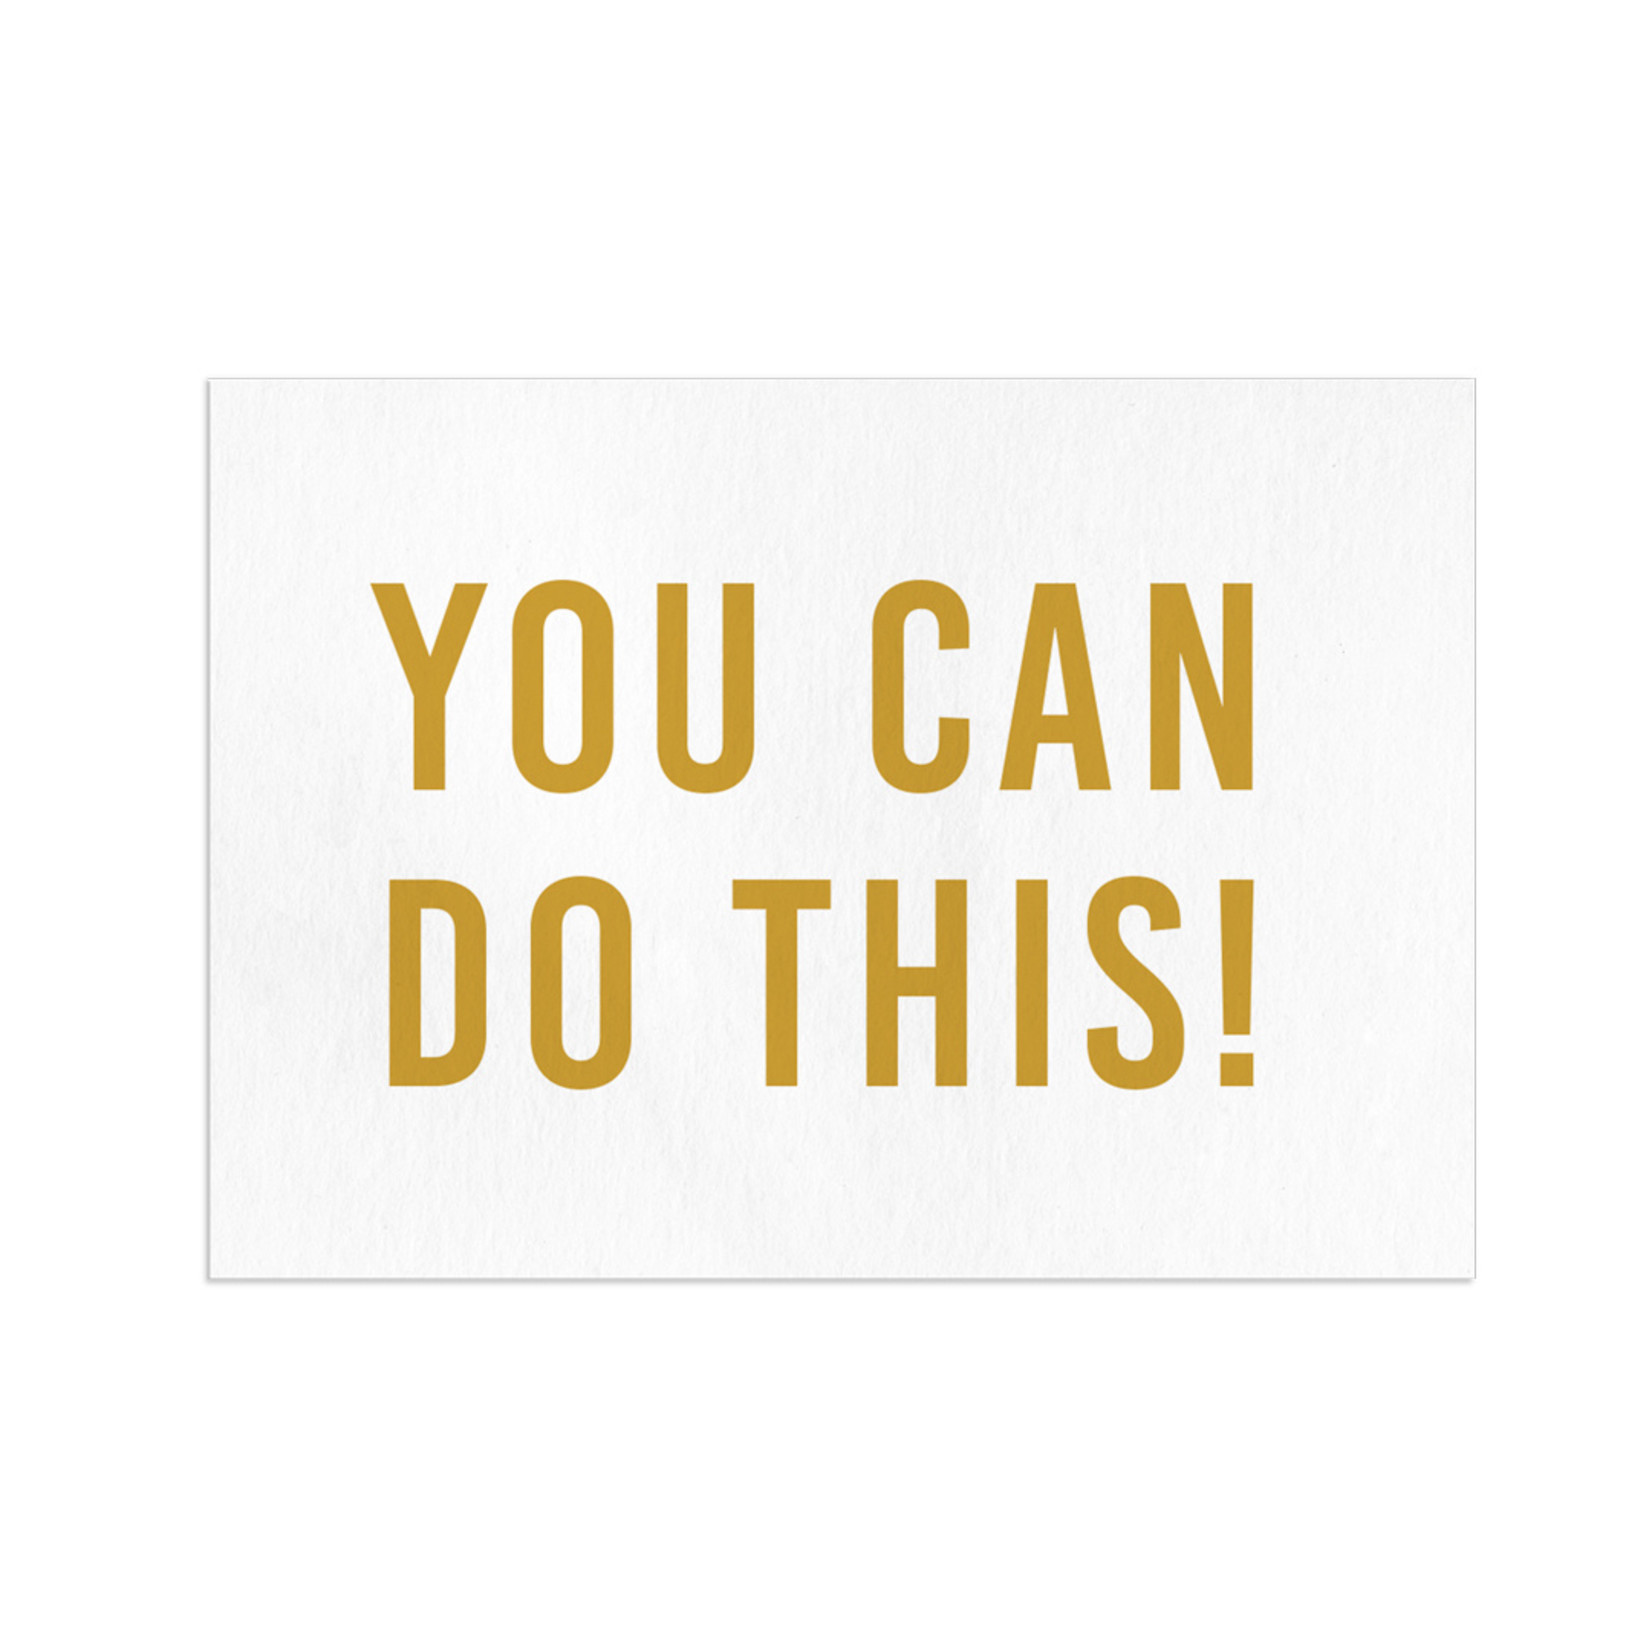 Wenskaart You can do this! - Letters and Lines